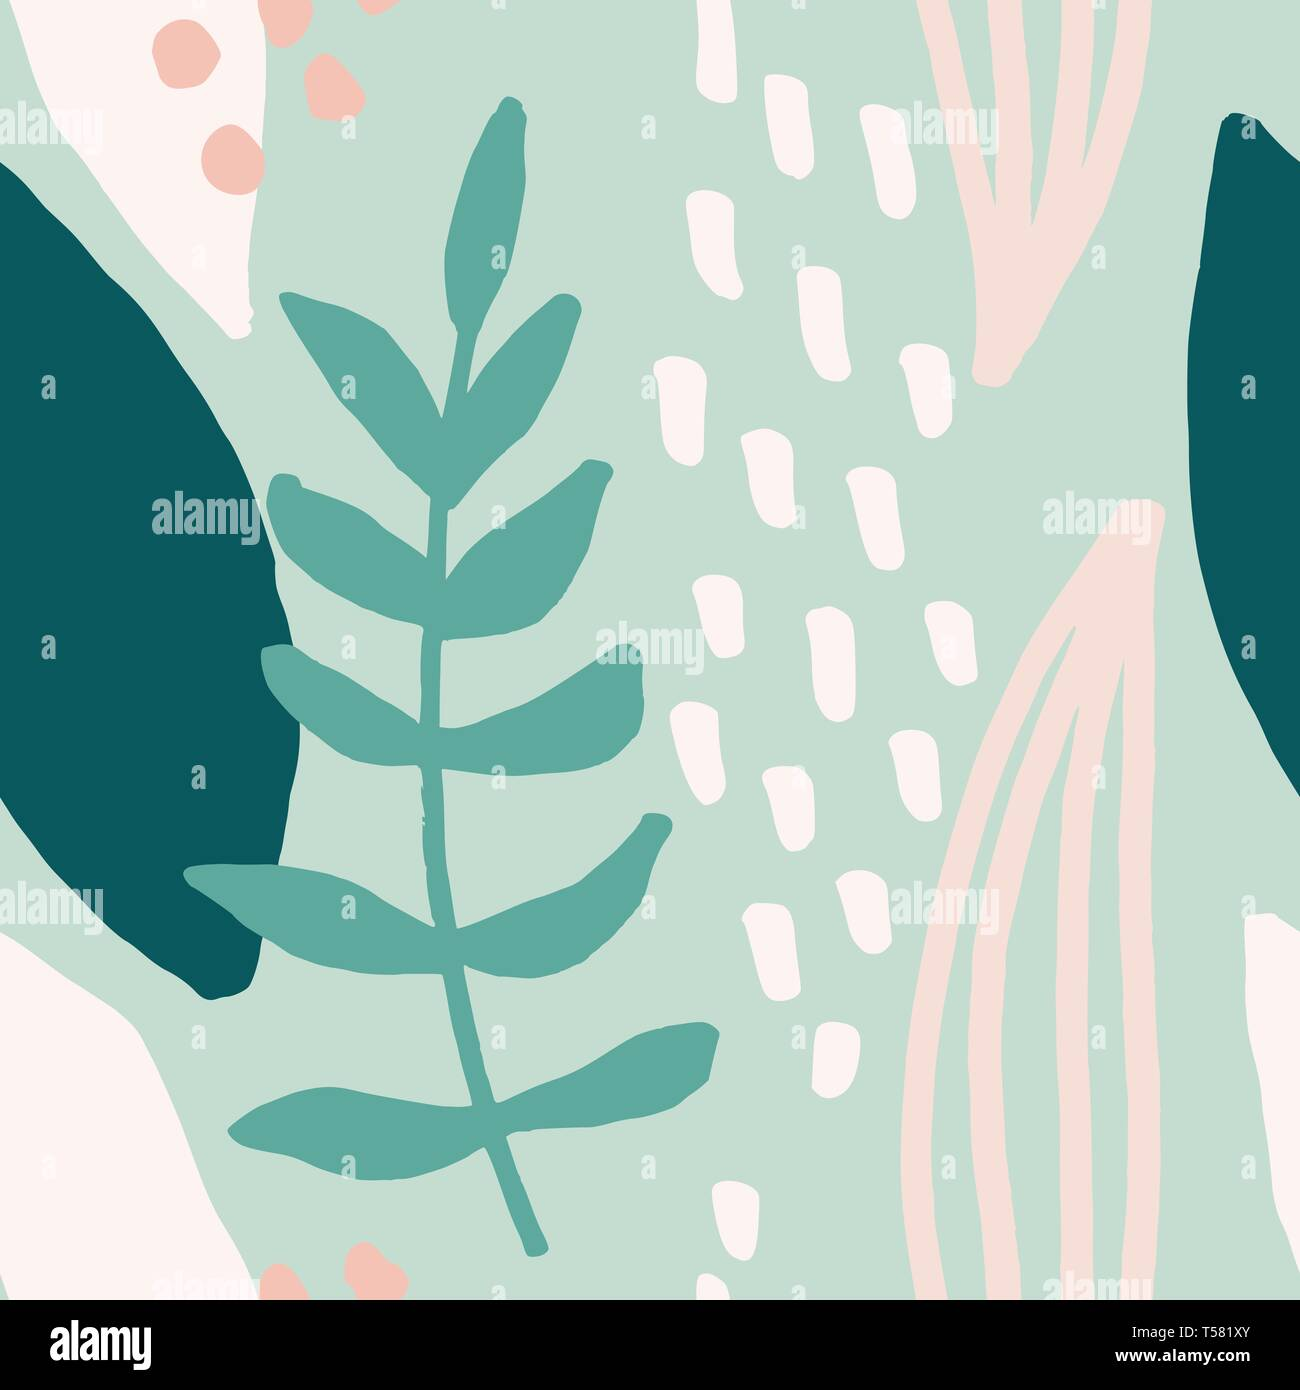 Seamless Repeating Pattern With Abstract Leaf Shapes In Mint